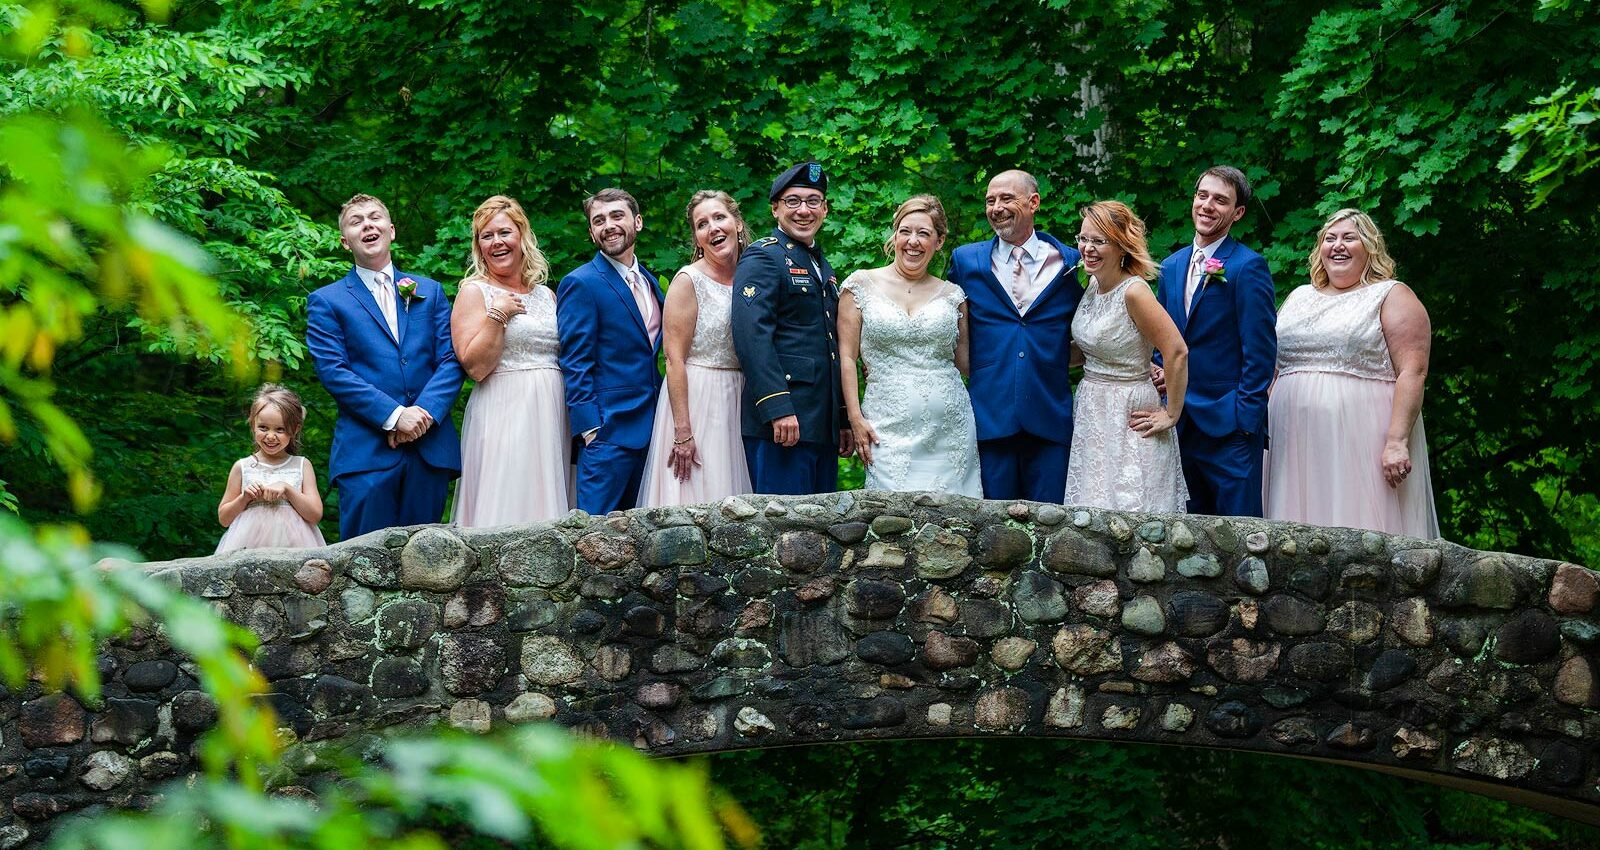 Wedding Photography - Fun Shot of Wedding Party on Stone Bridge - Paul Dekort Photographer